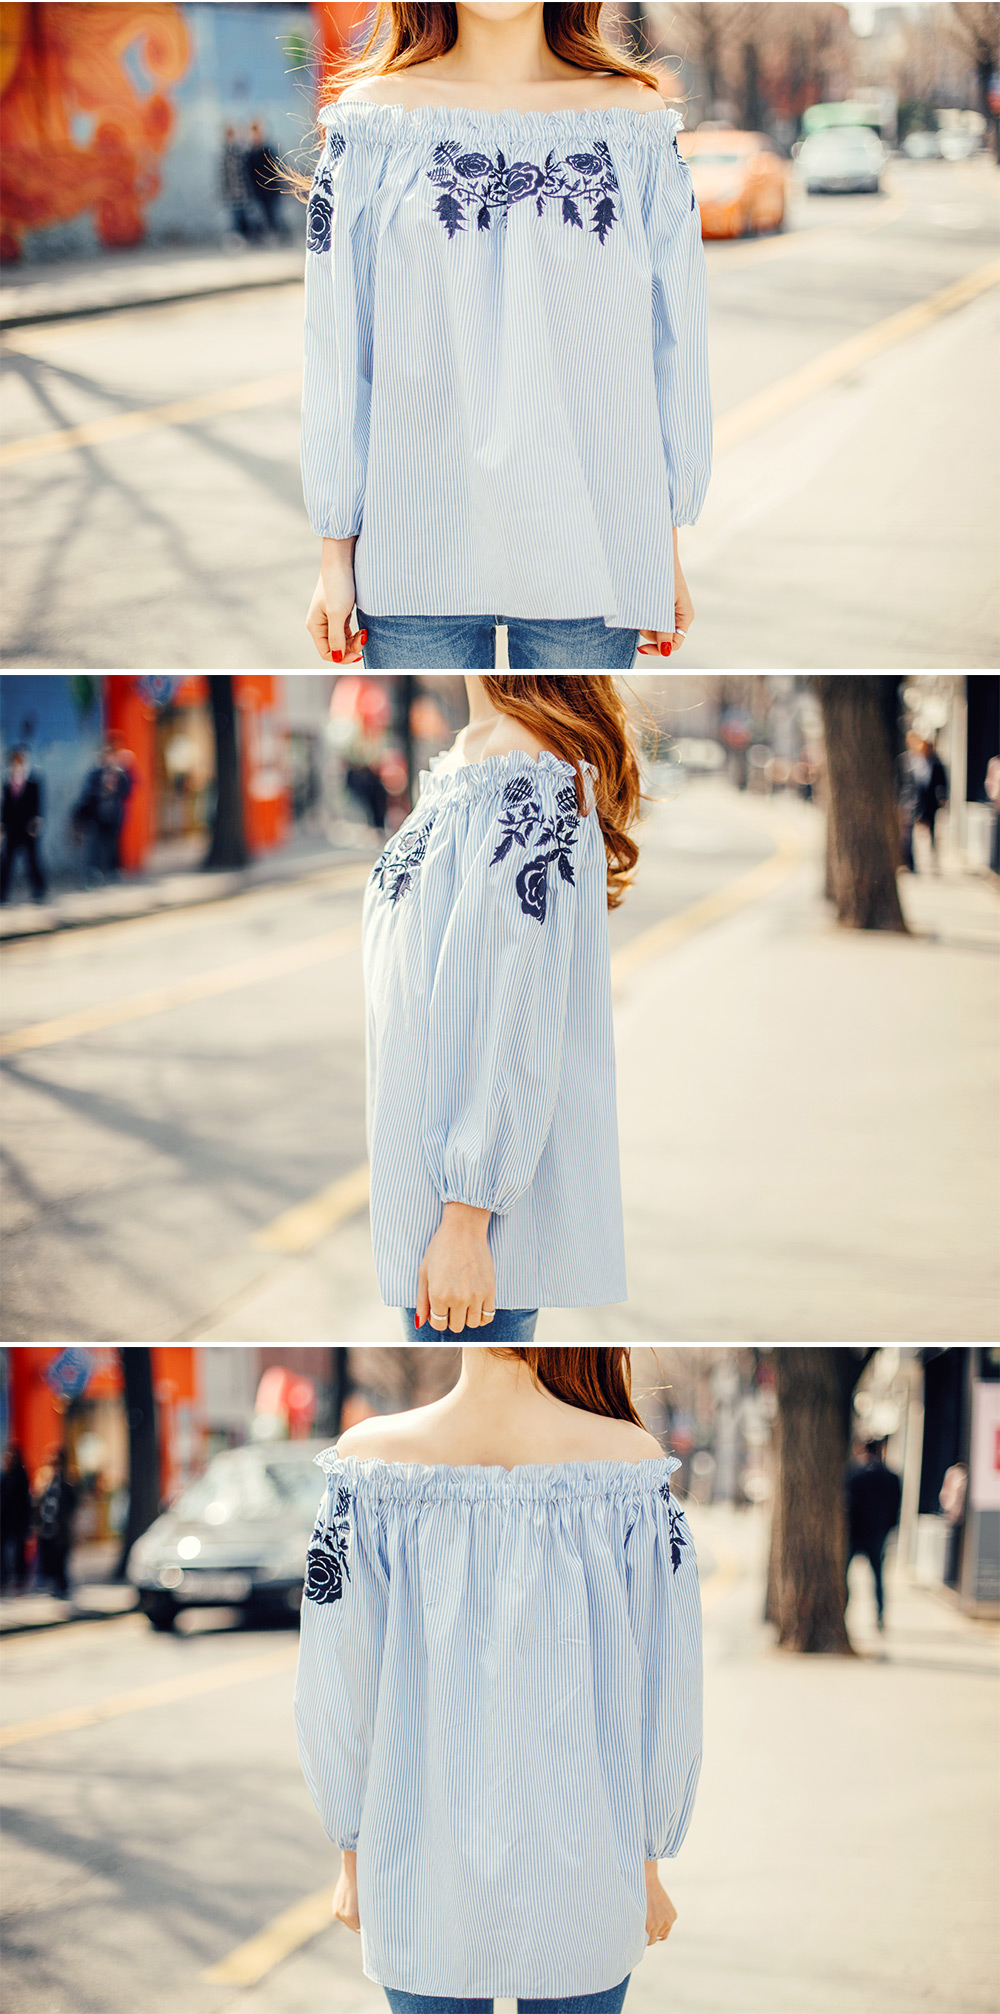 //cdn.nhanh.vn/cdn/store/29770/psCT/20181003/9325561/CHUU_Rose_Embroidered_Off_Shoulder_Blouse_(18).jpg